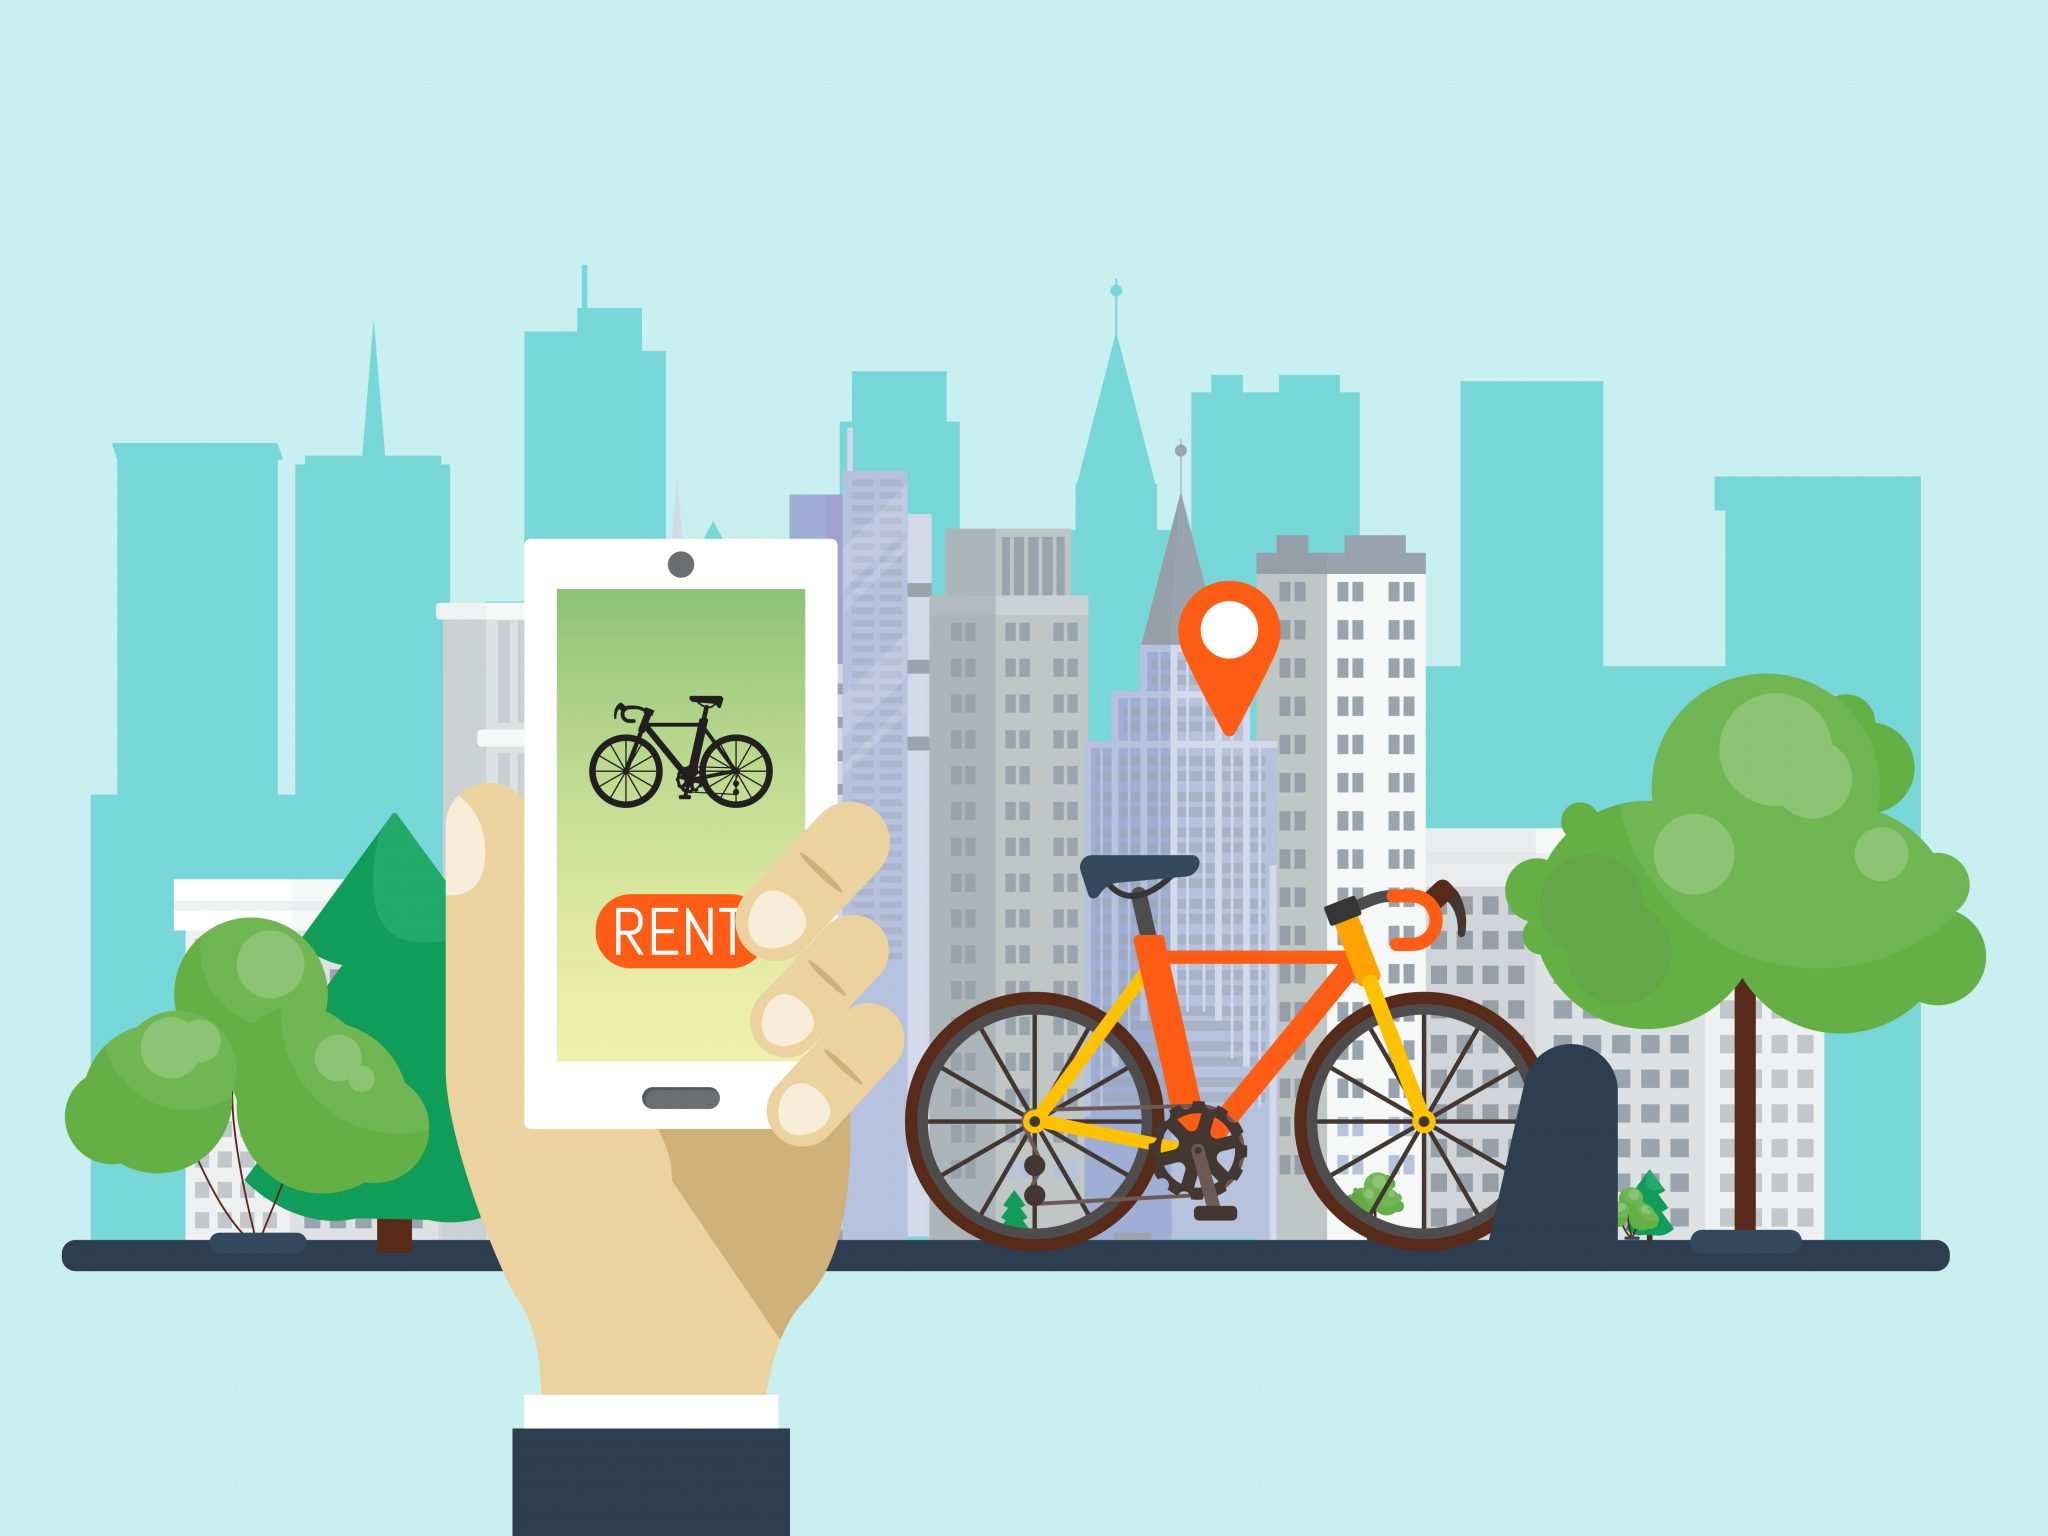 Urban bike renting system by using the phone app vector illustration. Smart service for rent bikes in the city. Hand holding phone with bicycle rent service app. Πηγή: Ingenuity siemens